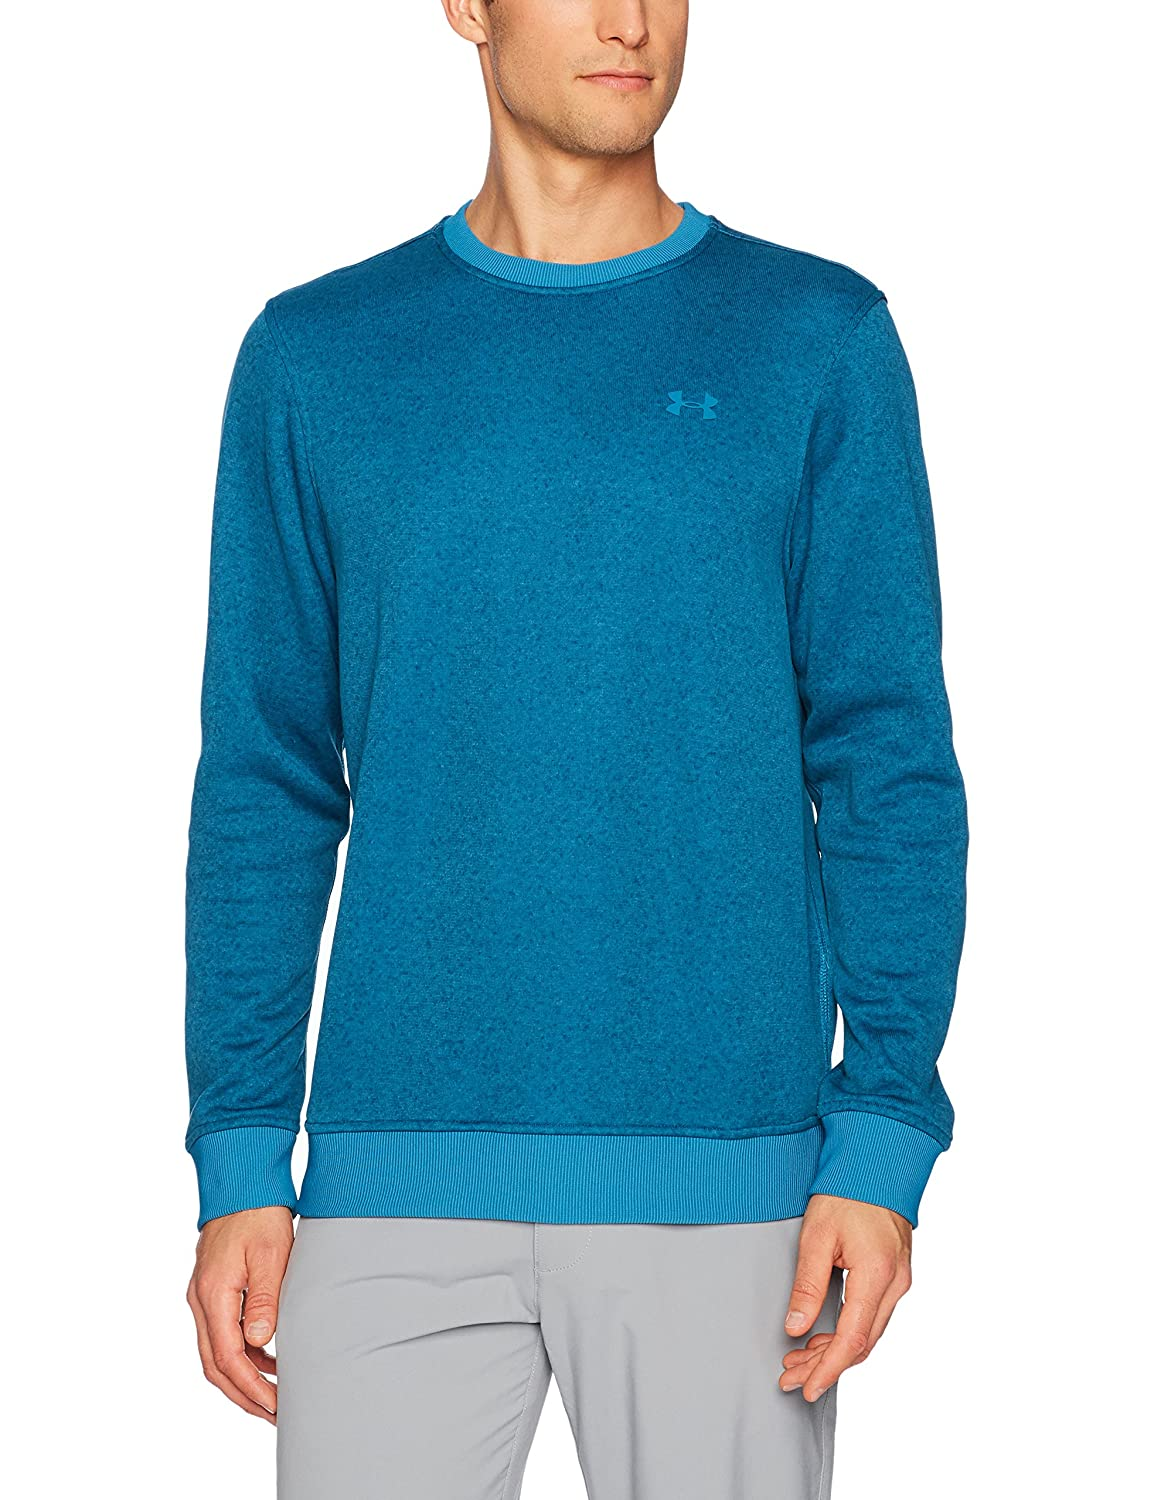 Under Armour Mens Storm SweaterFleece Patterned Crew Under Armour Apparel 1303995